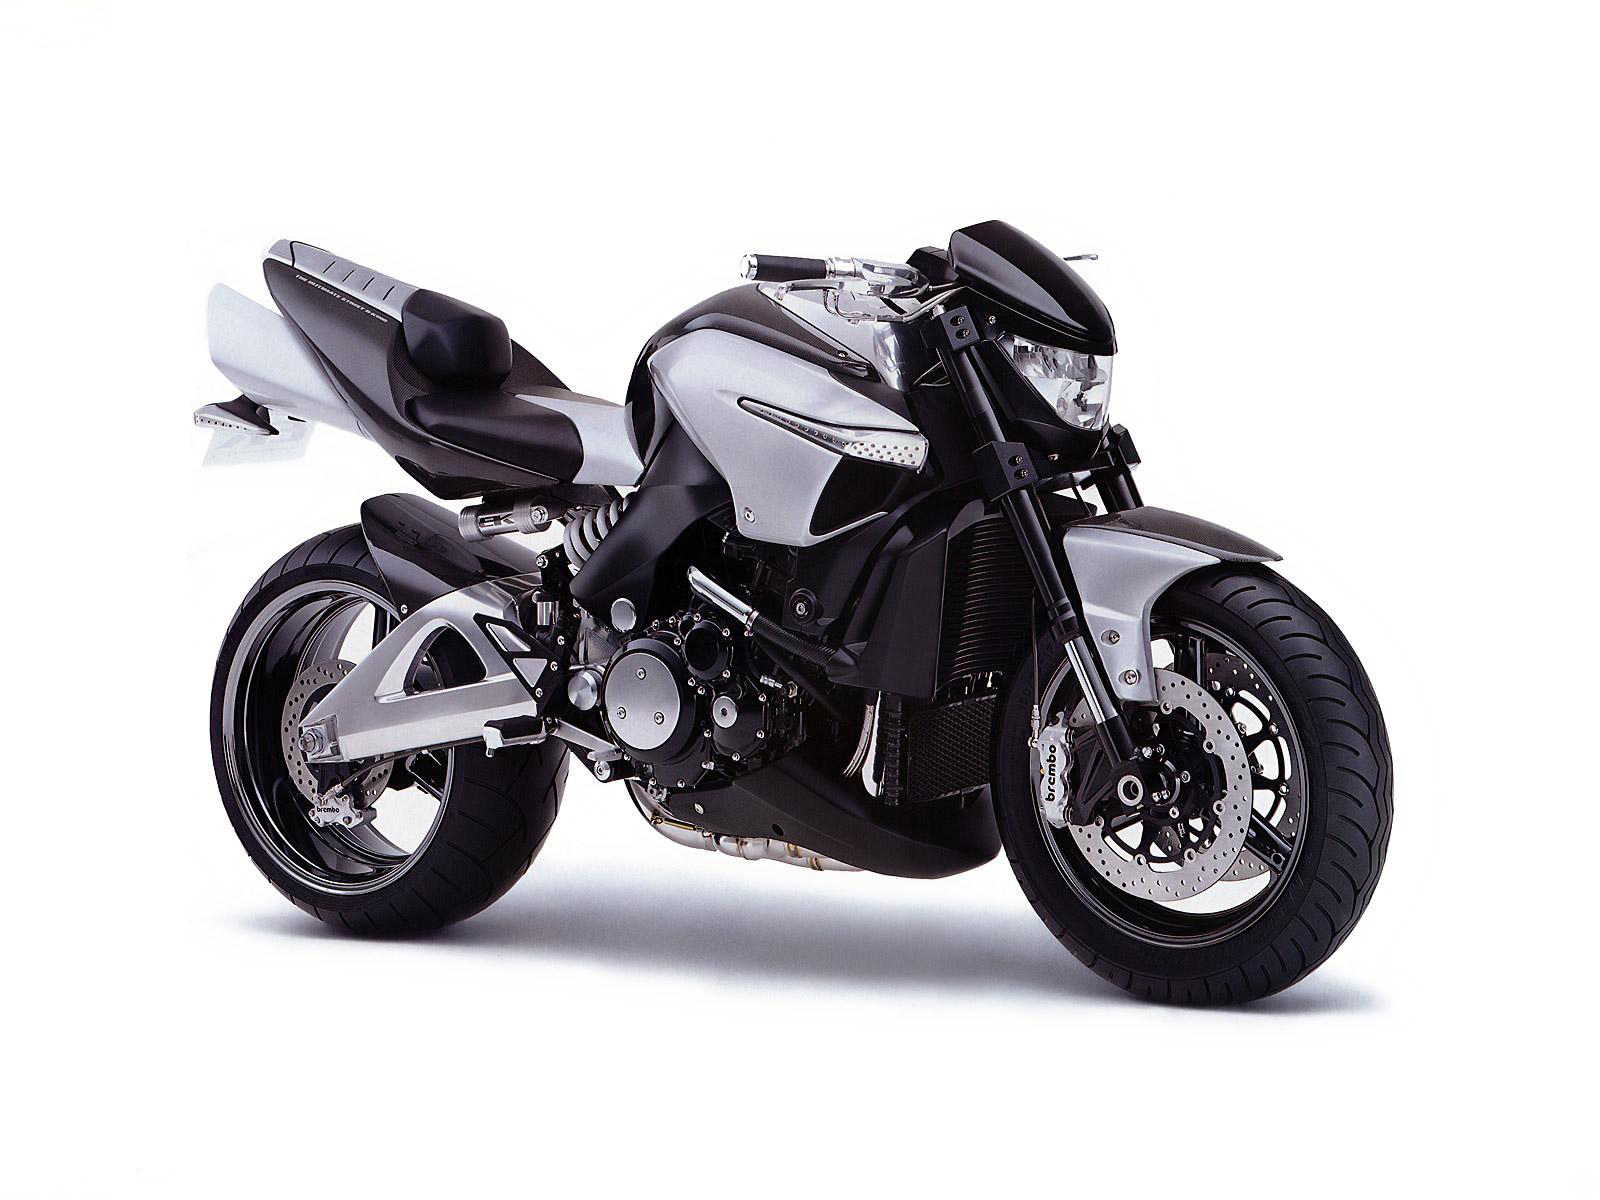 Black and gray motorcycle on a white background, wallpaper, motorcycles.